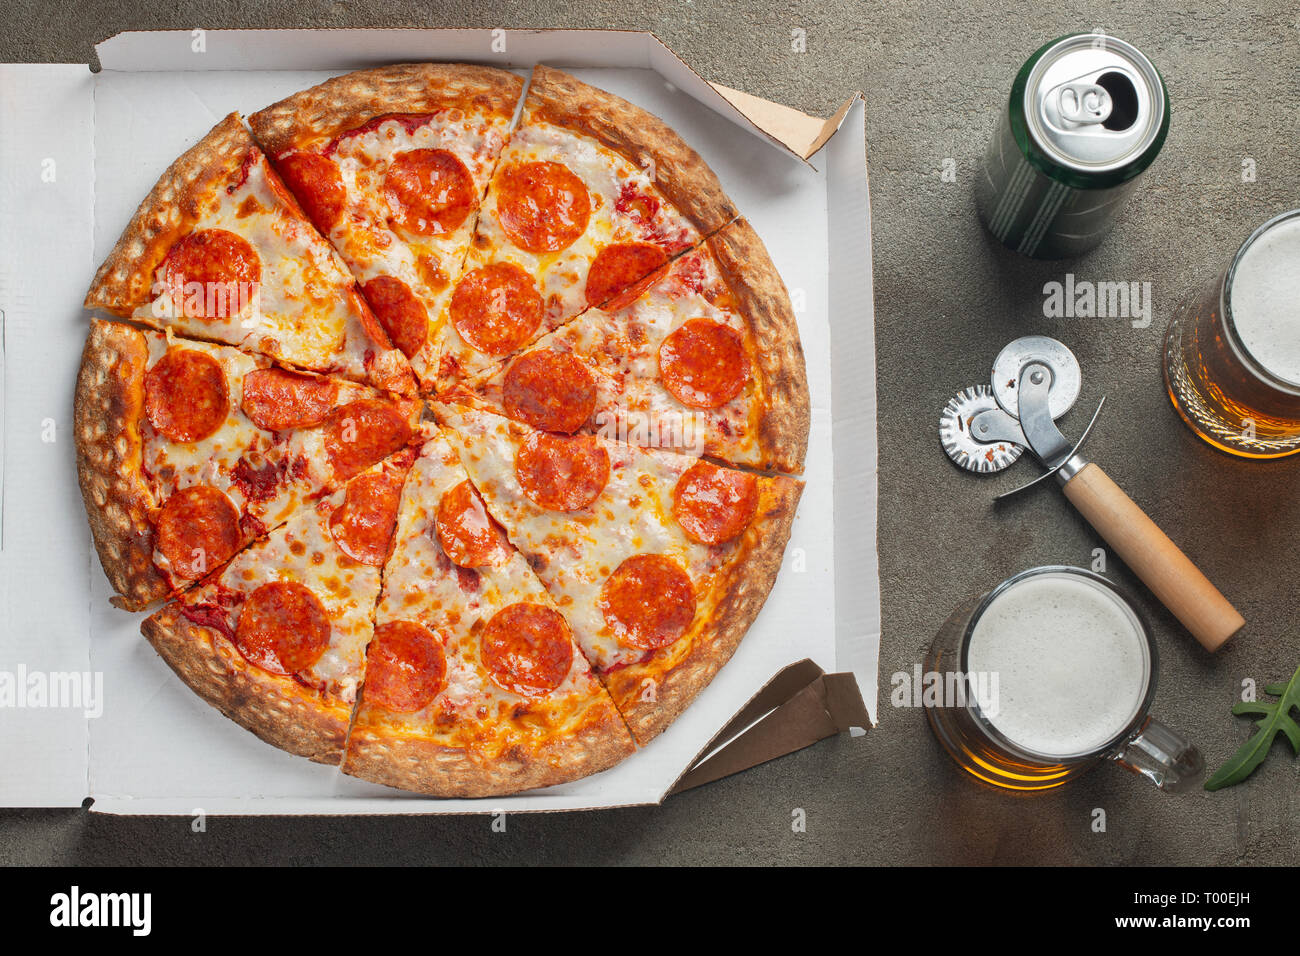 Italian fast food. Delicious hot pepperoni pizza in a box, and glass of beer sliced and served on brown table, close up view. Concept of fast food and Stock Photo